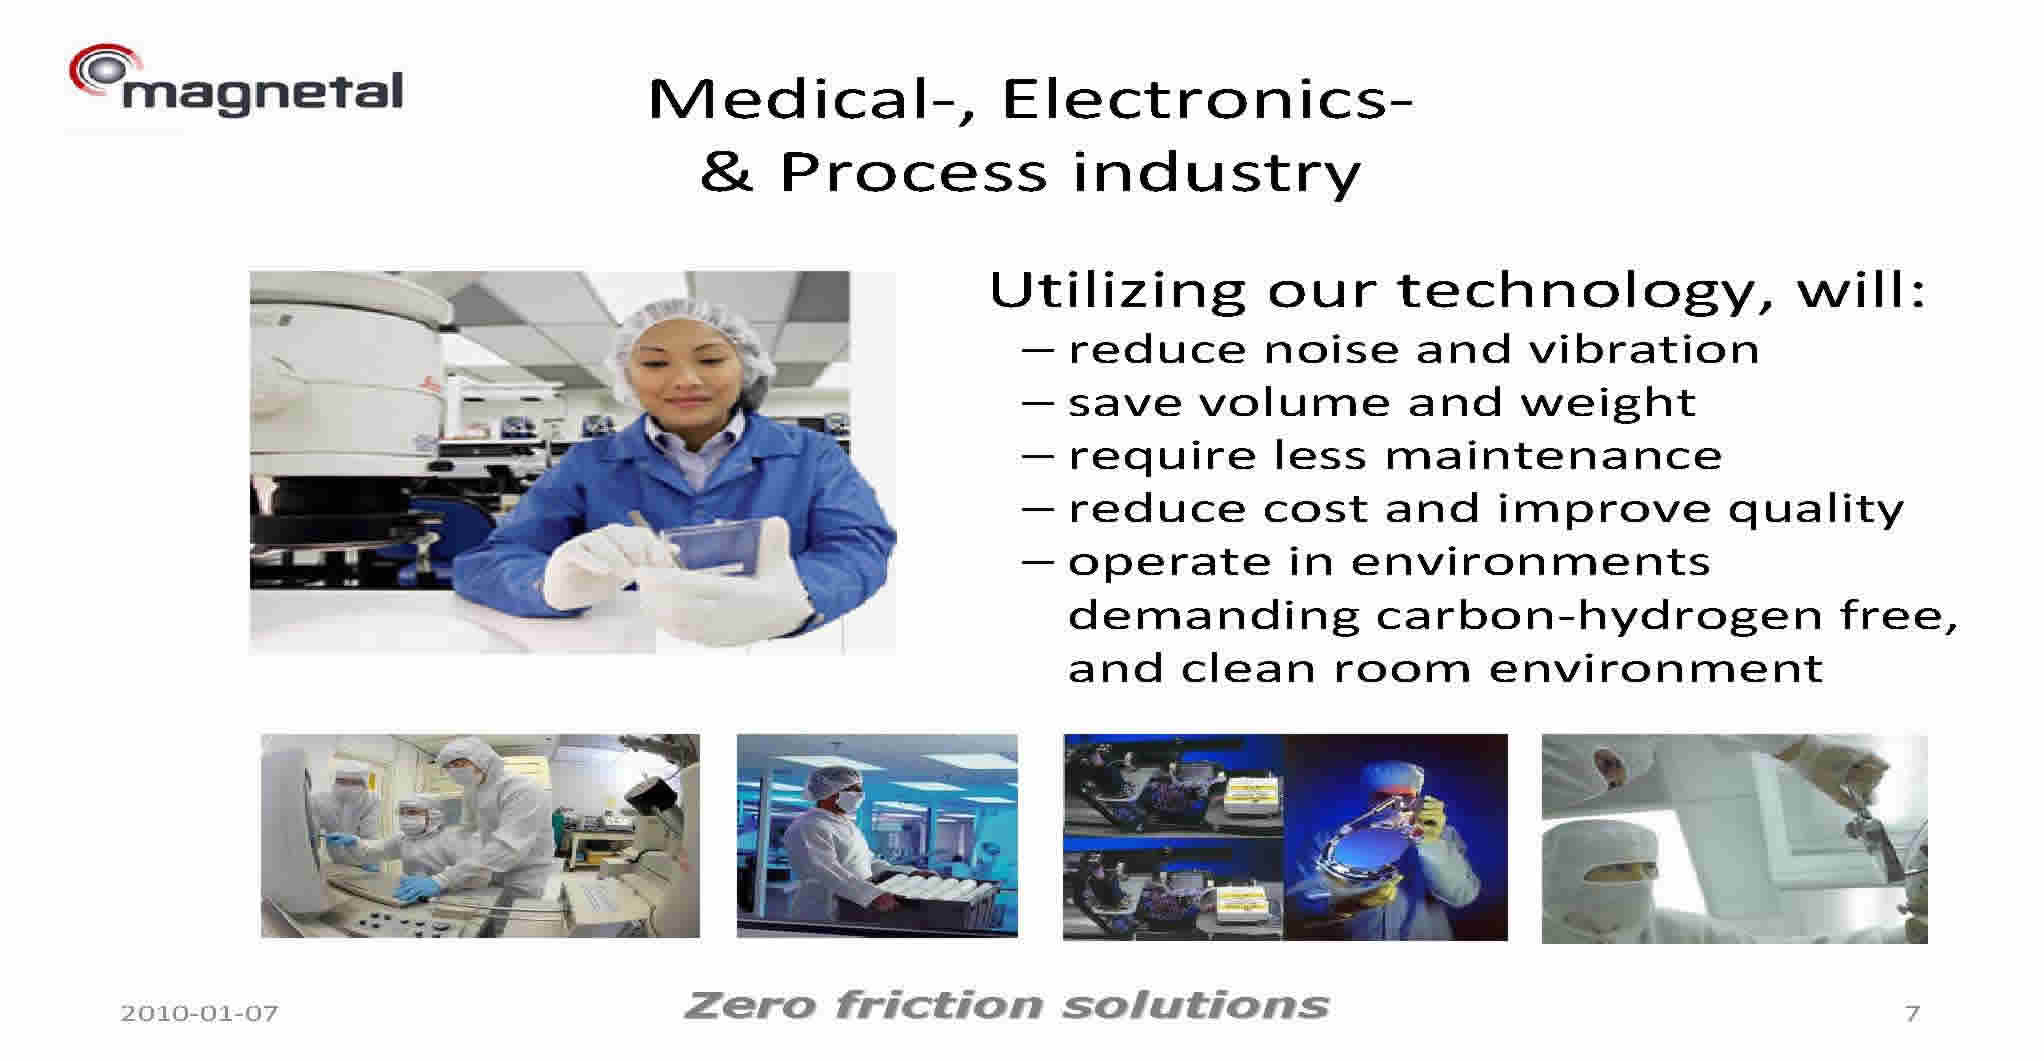 Adding Value to Medical adn Process Industry by Using Magnetal Homopolar Electrodynamic Bearings